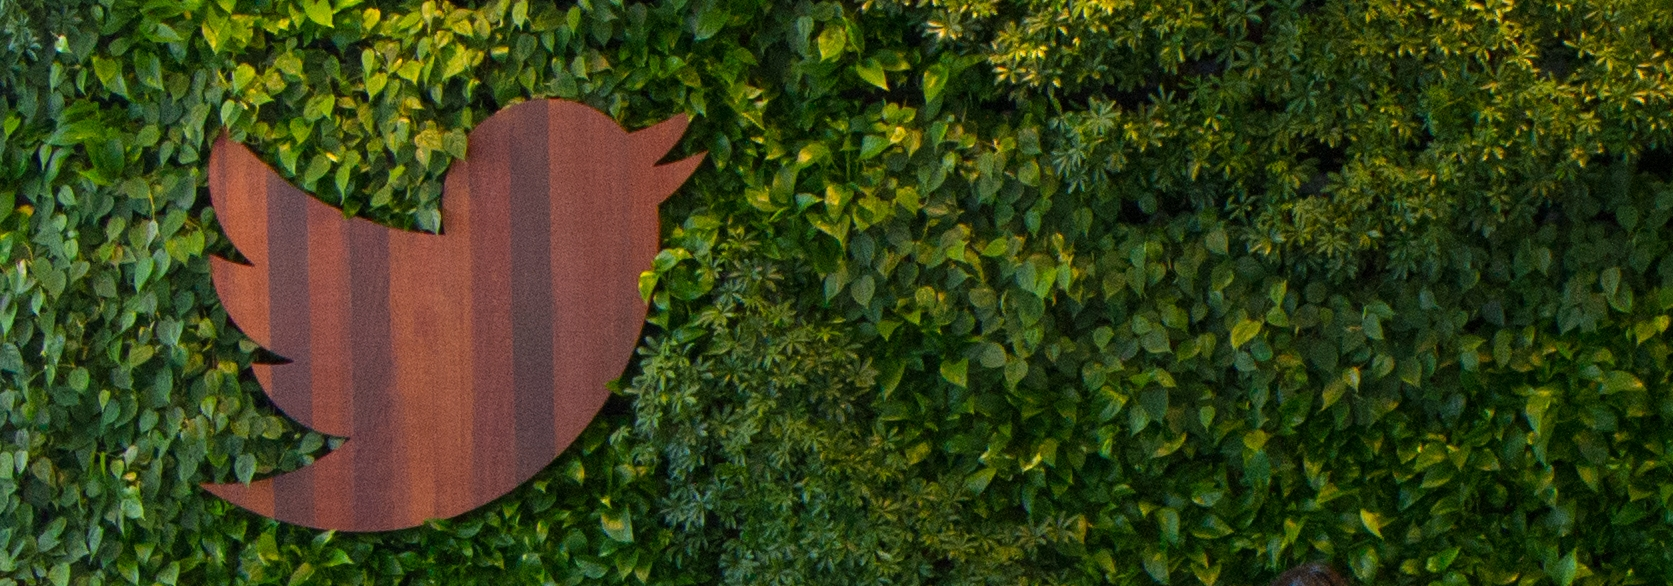 Twitter Sets November Deadline for Acquisition Hunt